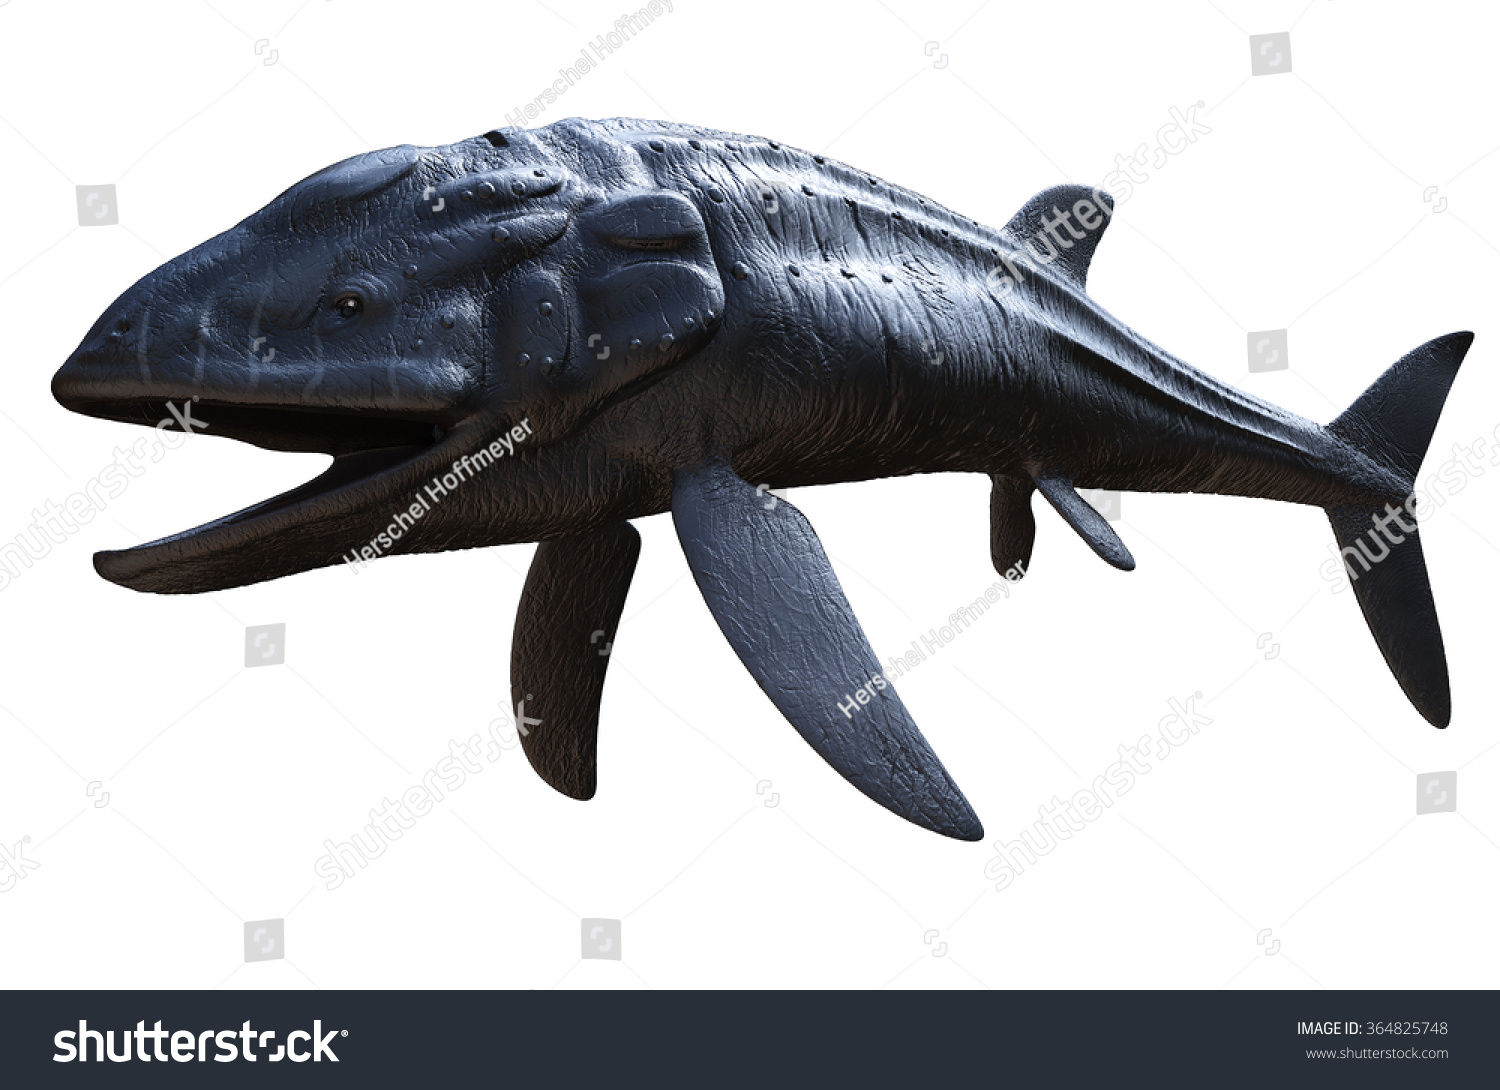 Leedsichthys Giant Bony Fish That Lived Stock Illustration 364825748